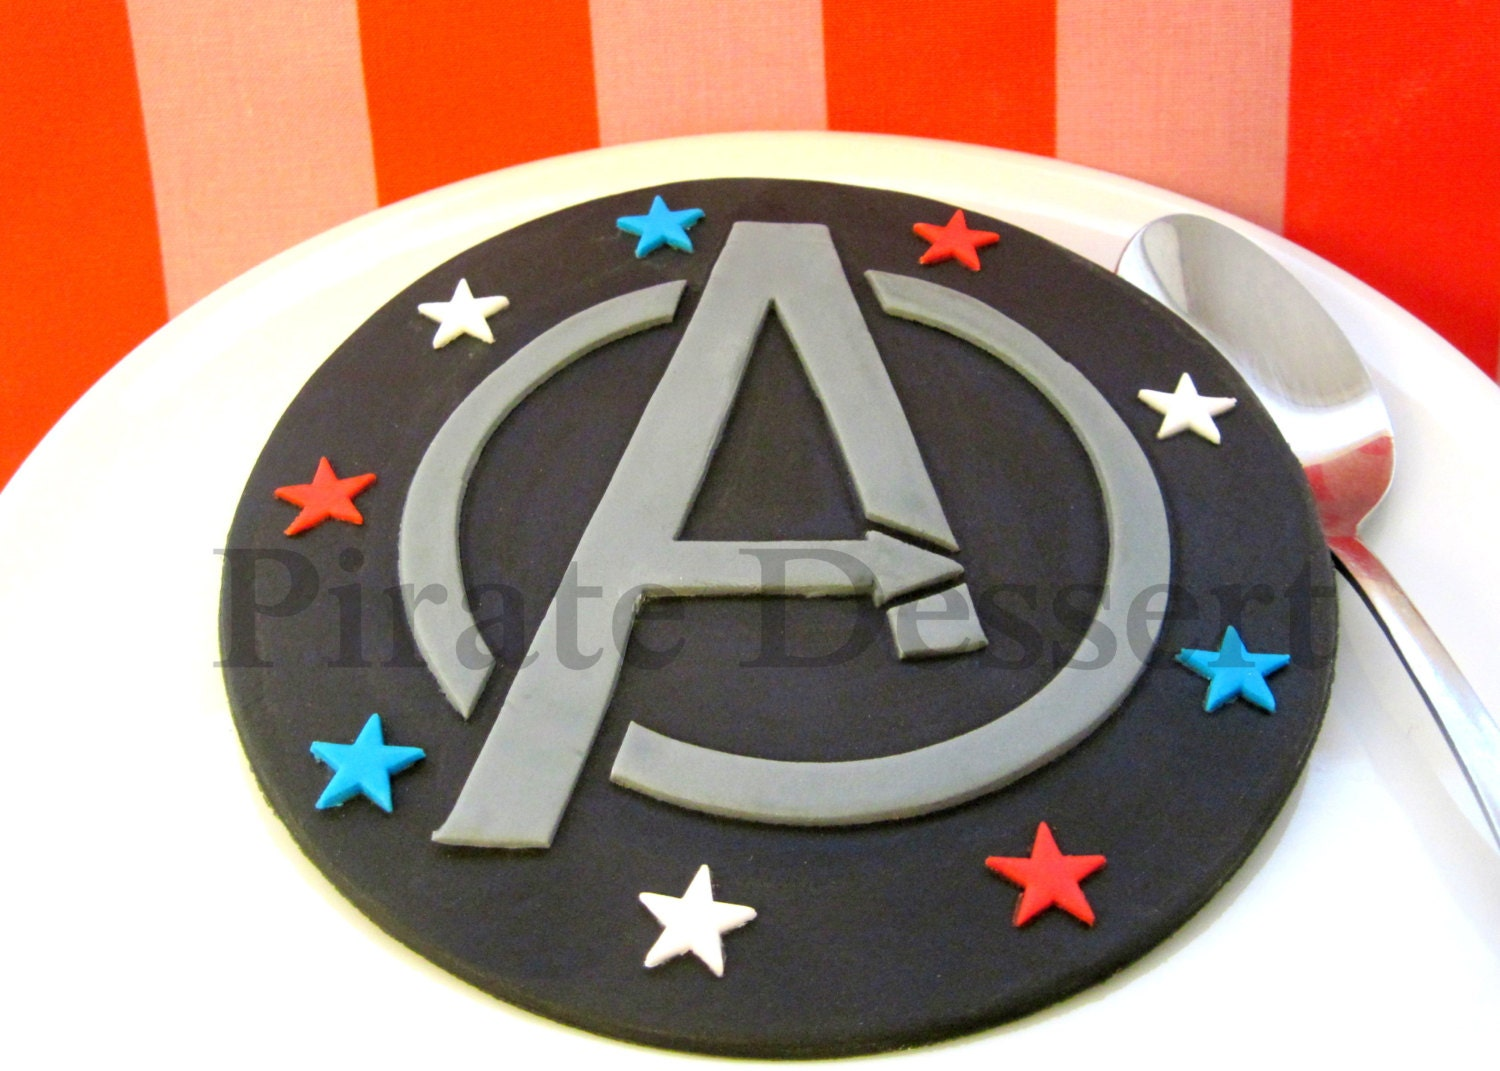 THE AVENGERS Edible Cake Topper Avengers Logo Edible